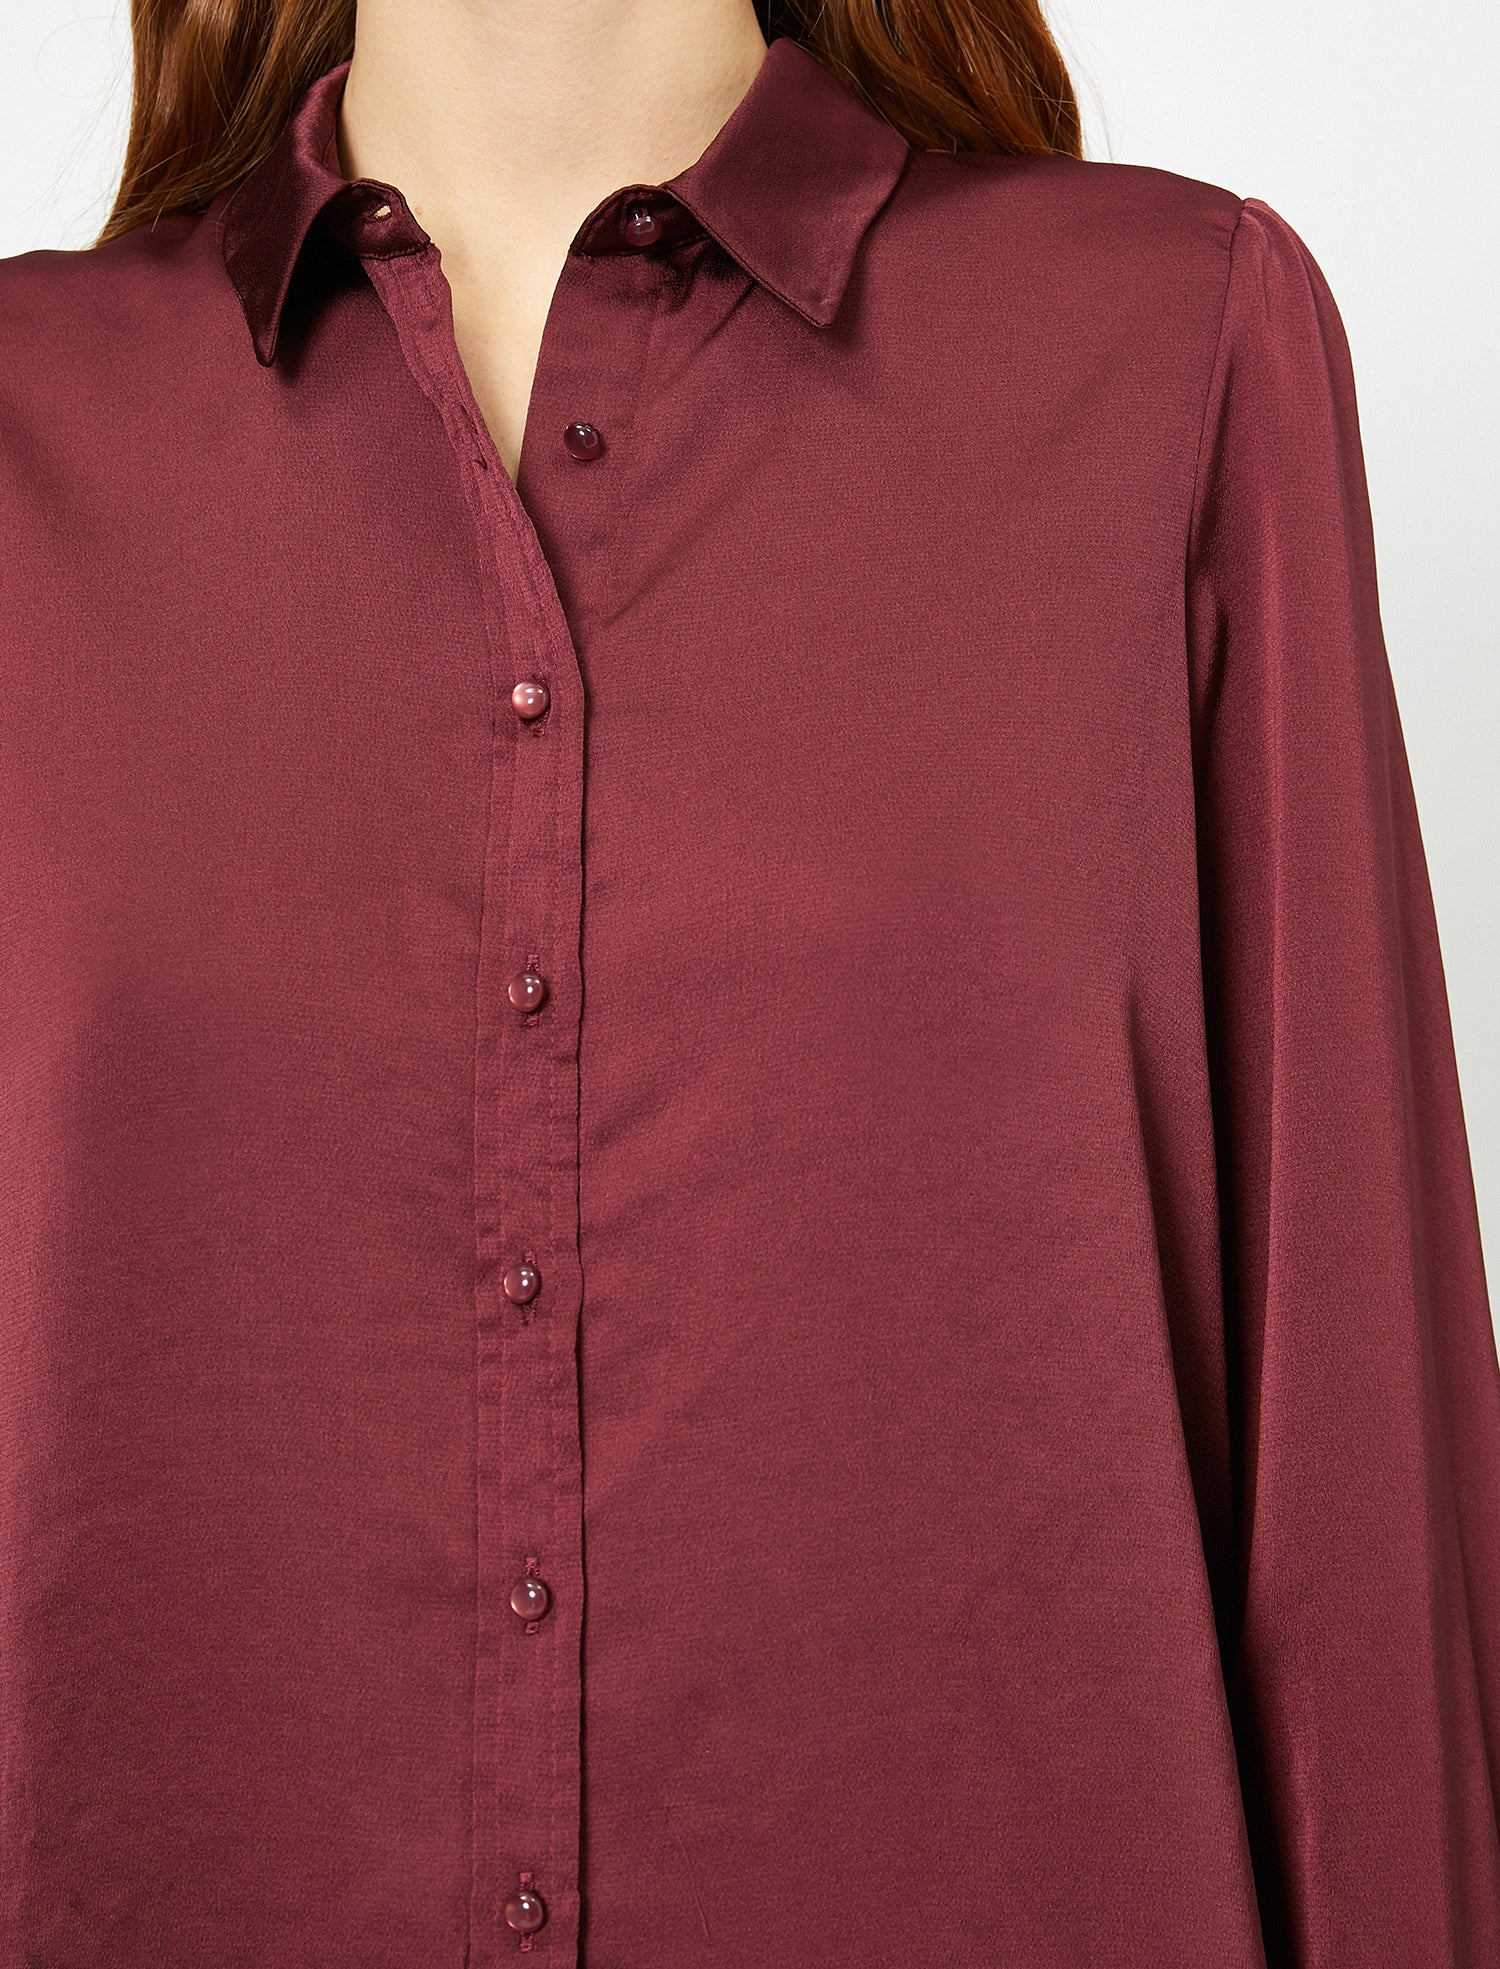 Solid Button-Up Shirt in Bordeaux